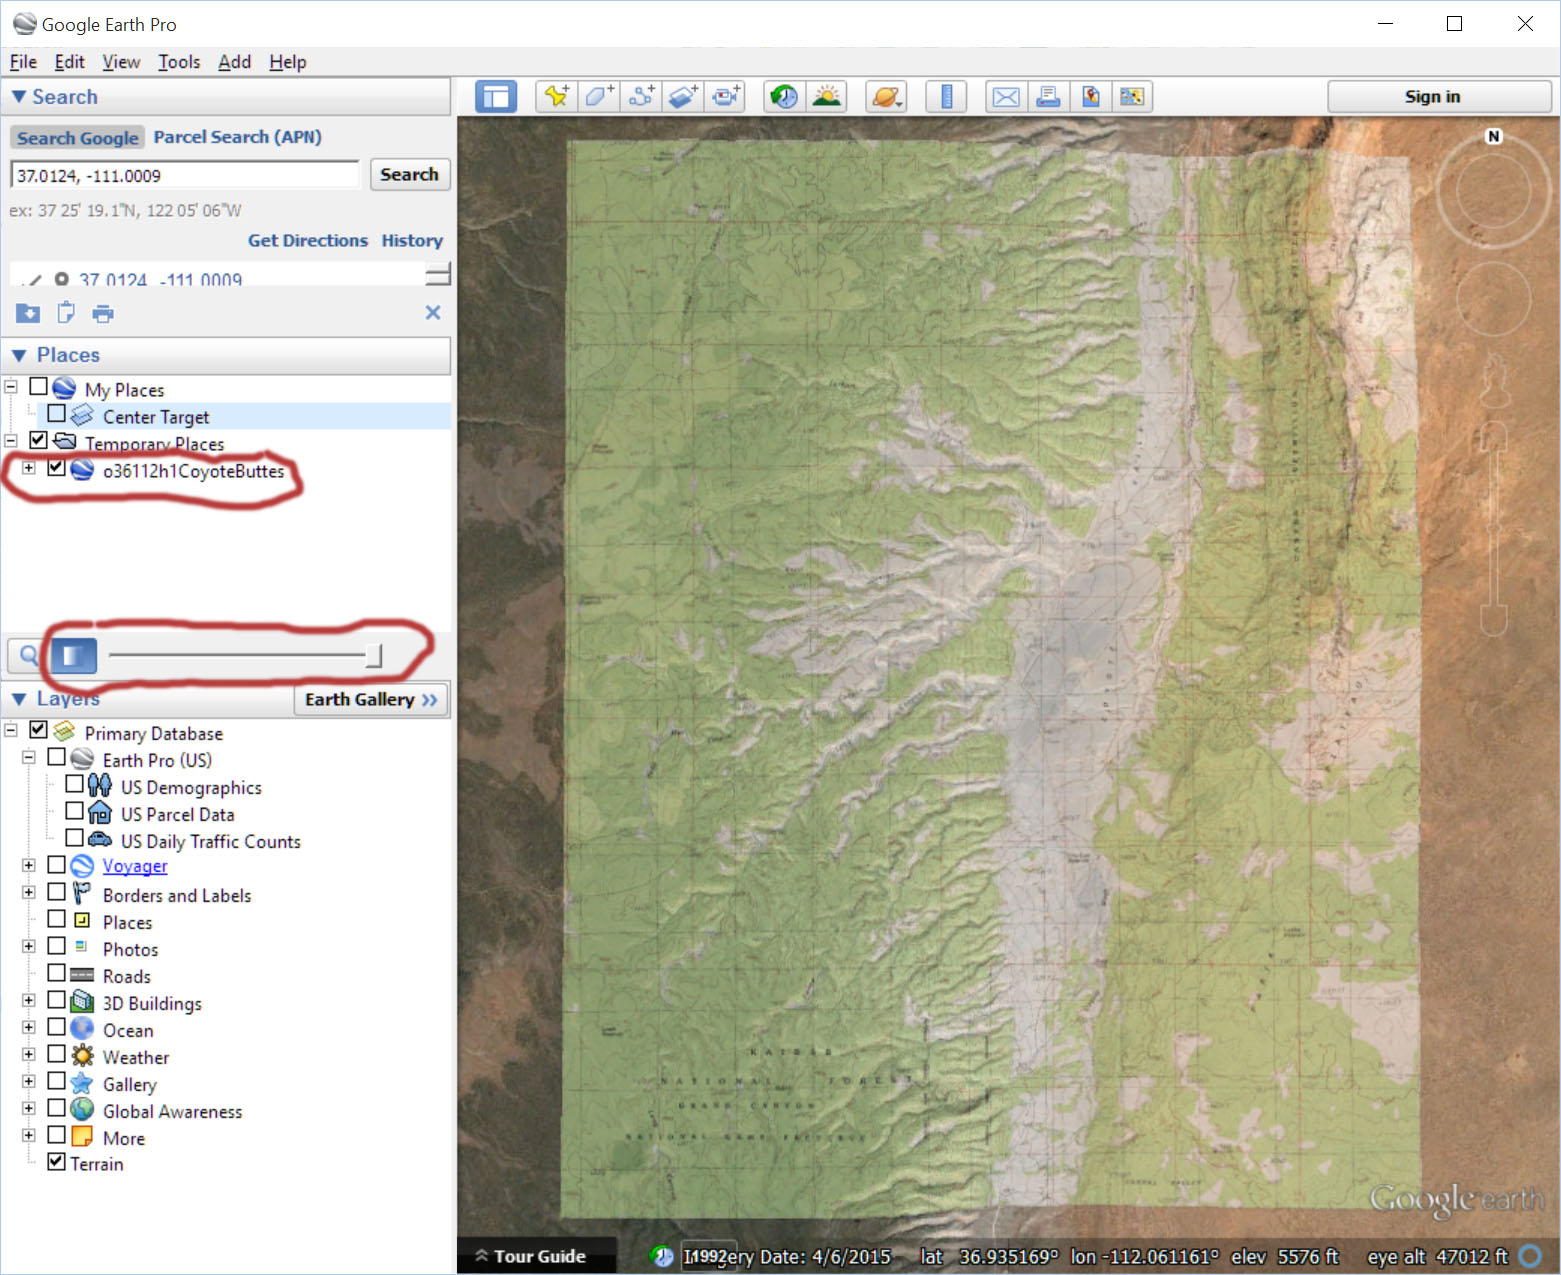 How to get coordinates from google earth